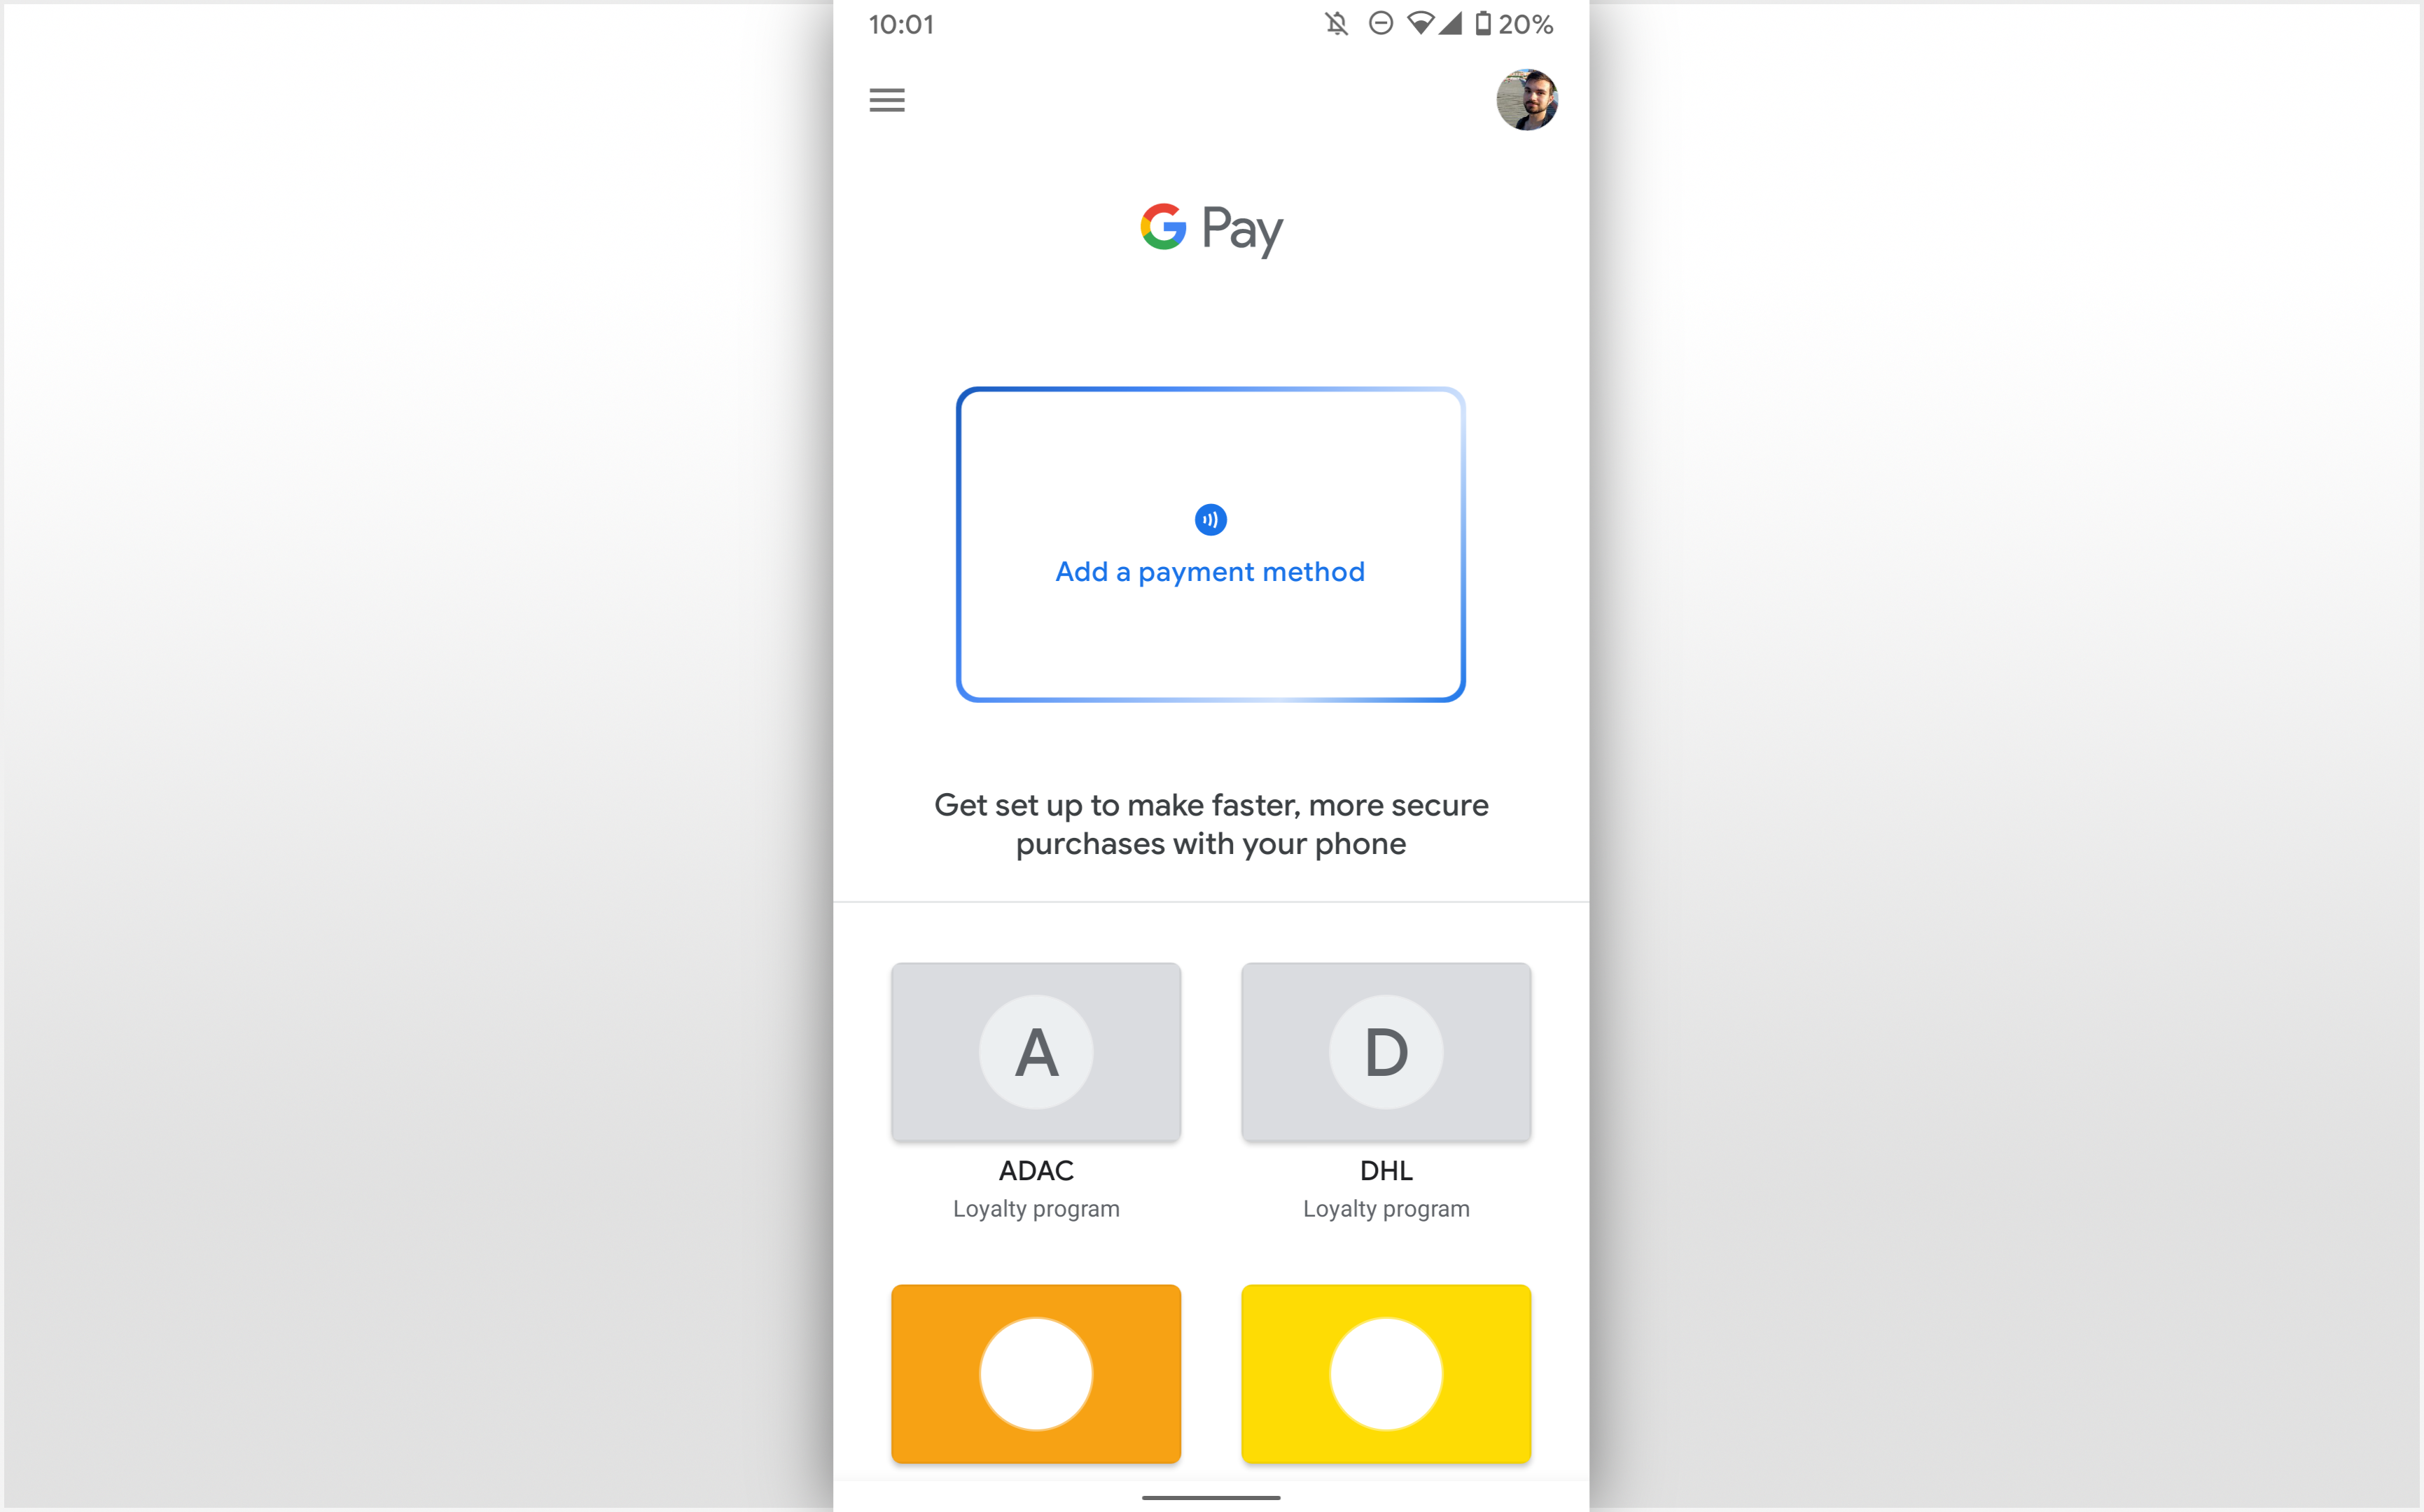 Google Pay has an alternative, cleaner interface accessible from your Pixel's power menu